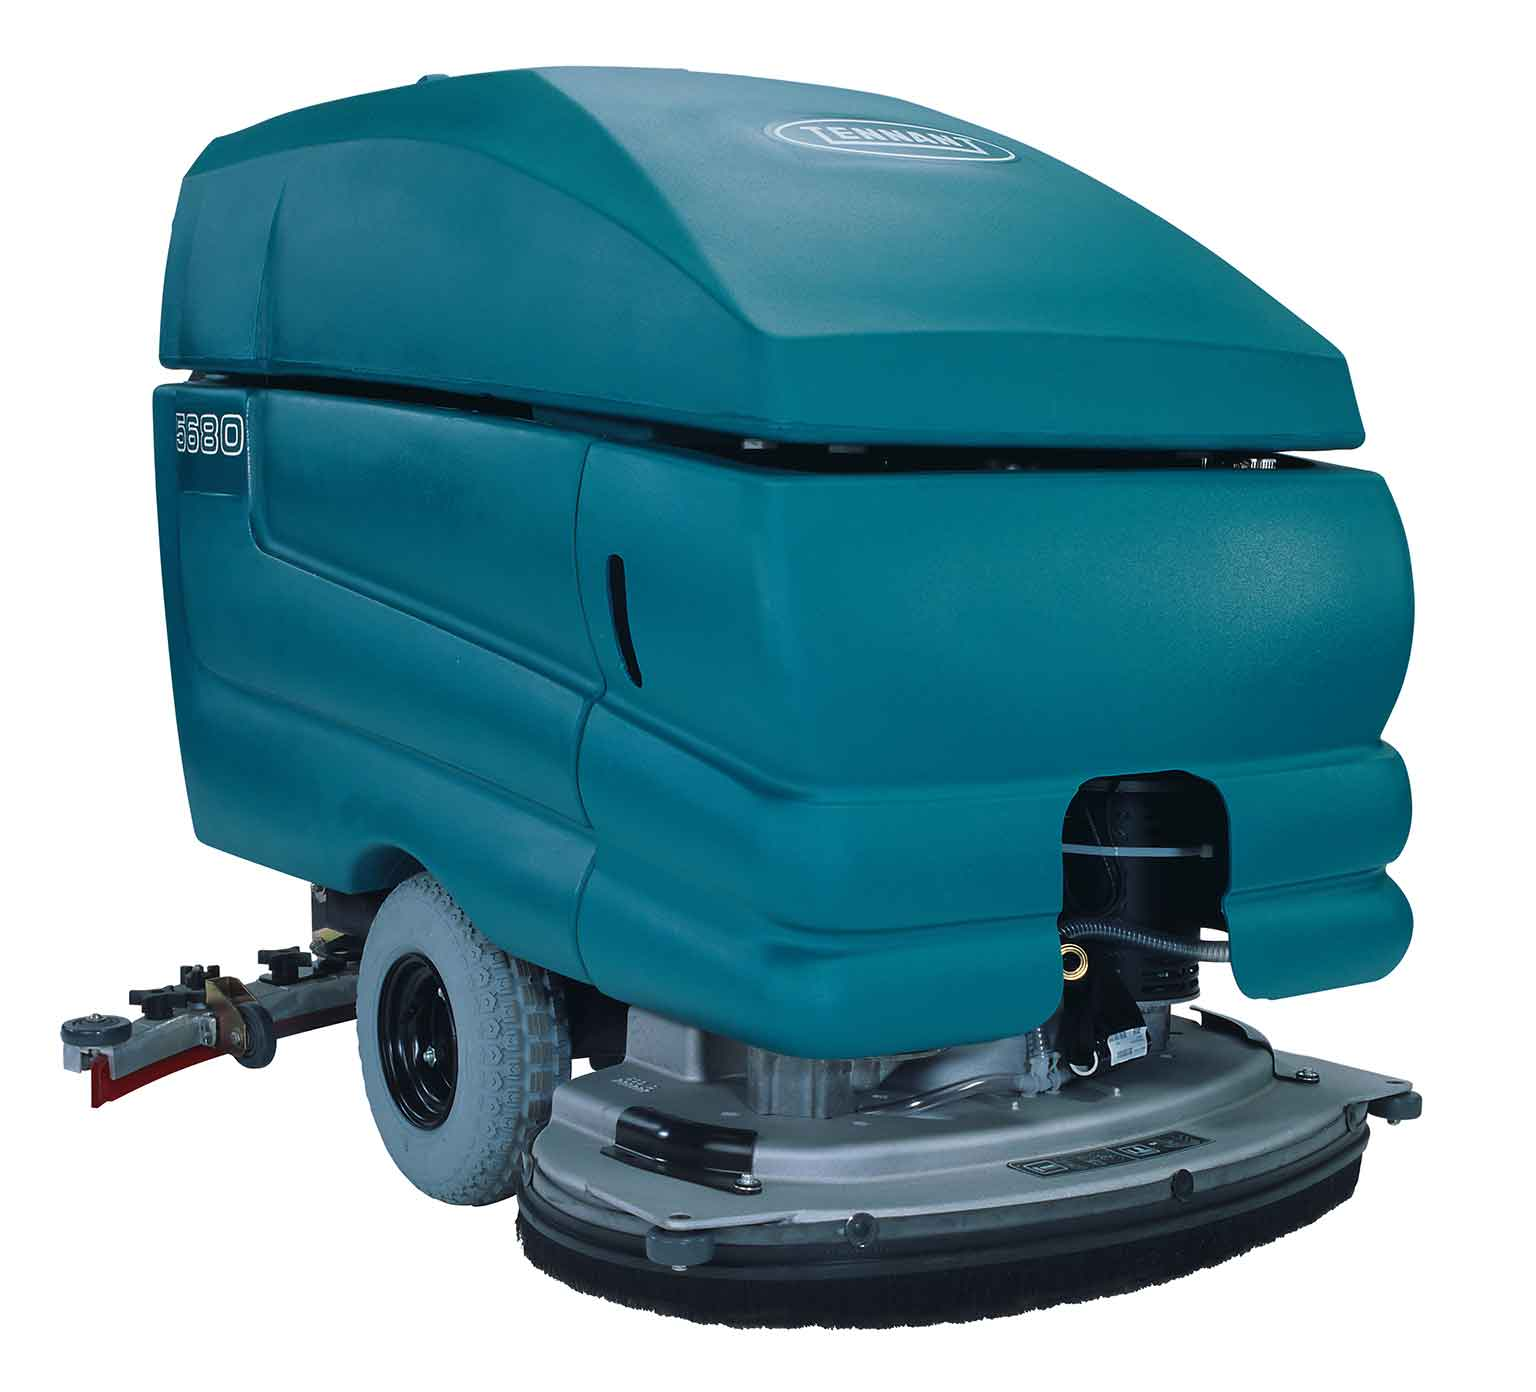 5680 walk behind floor scrubber tennant company for Floor scrubber